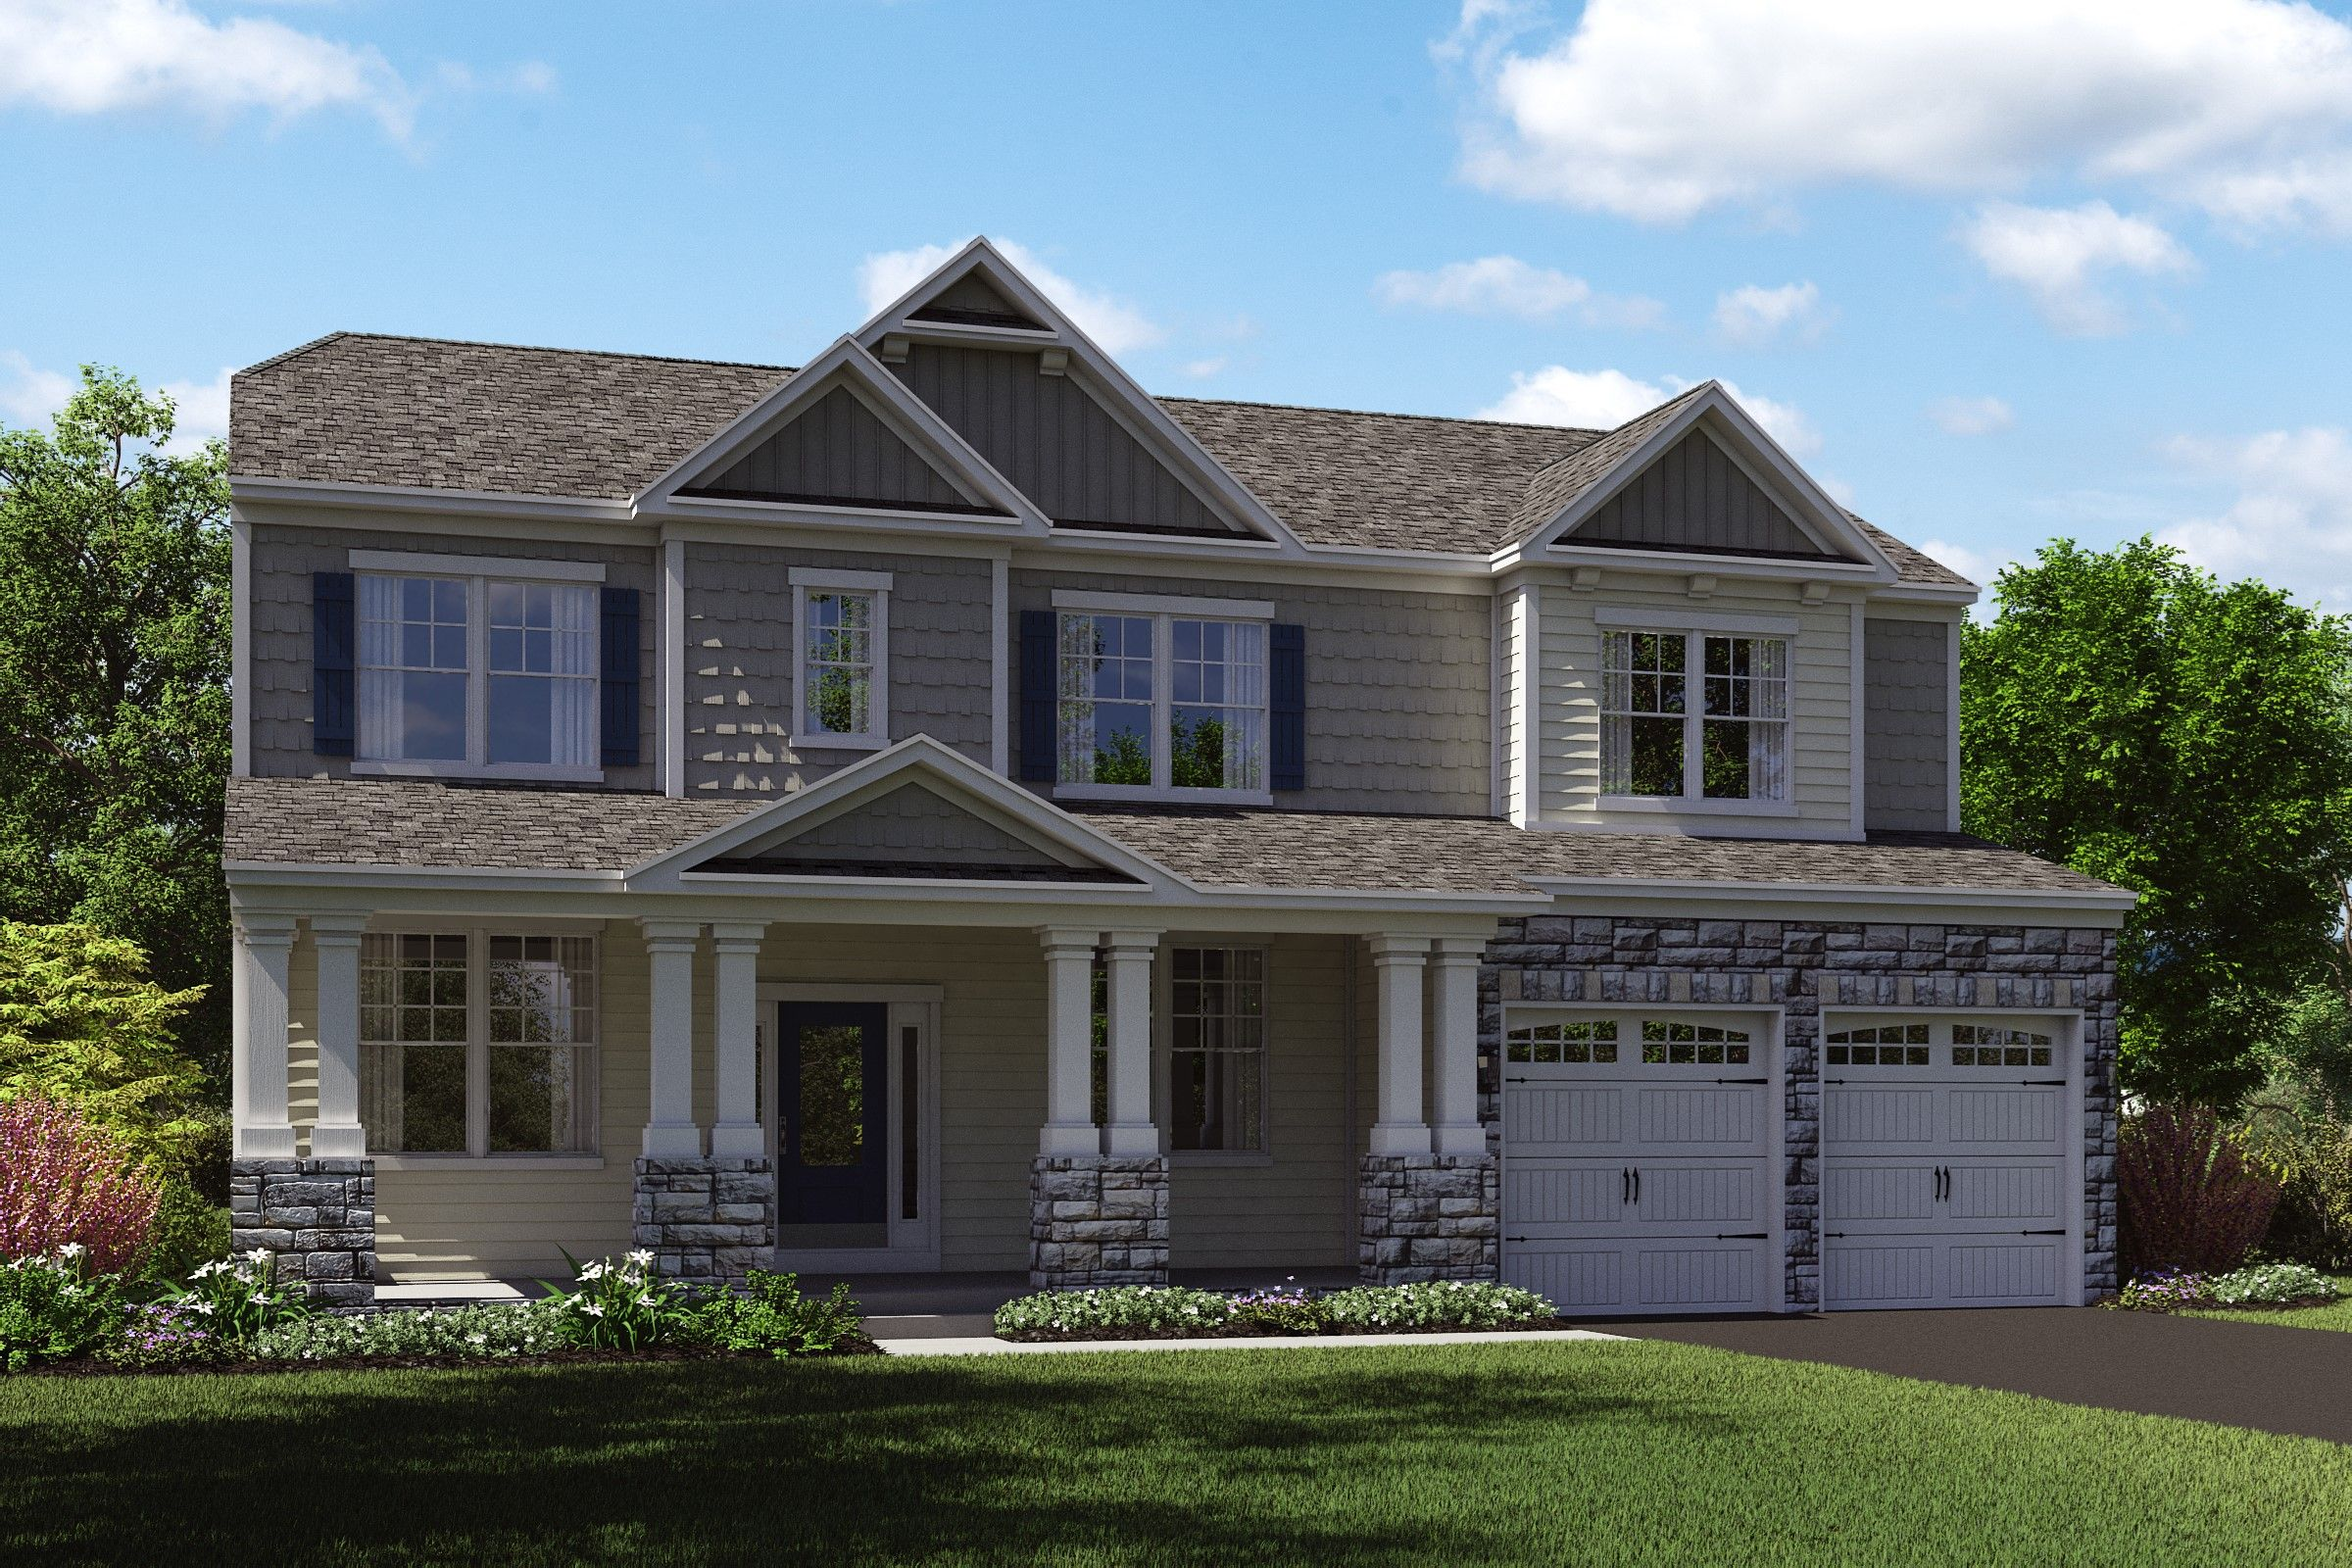 411 Asher's Farm Road, Homesite 34, Annapolis, MD Homes & Land - Real Estate